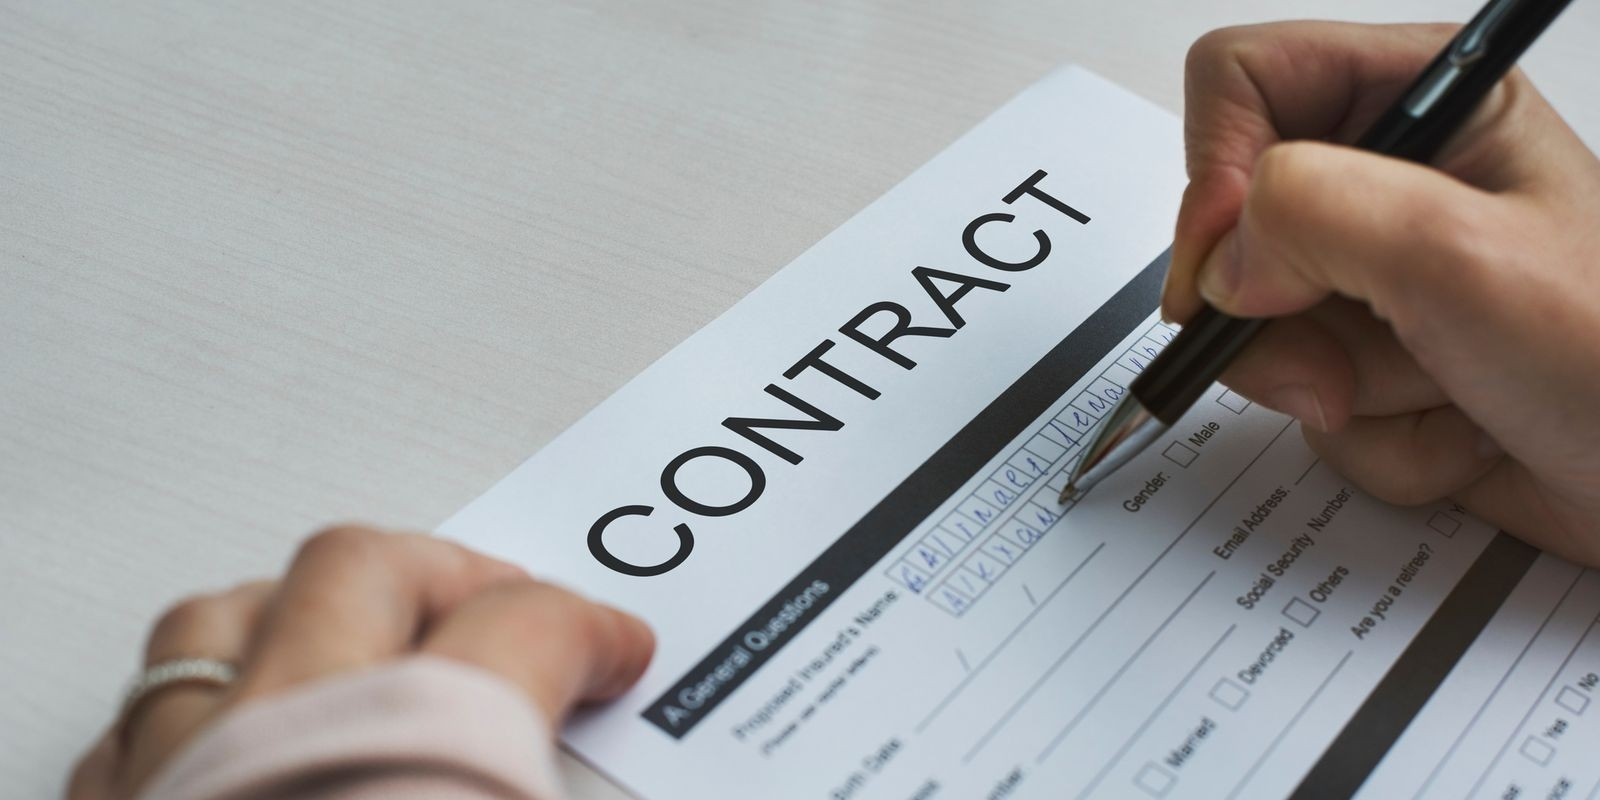 Confidentiality, non-disclosure or licensing contracts